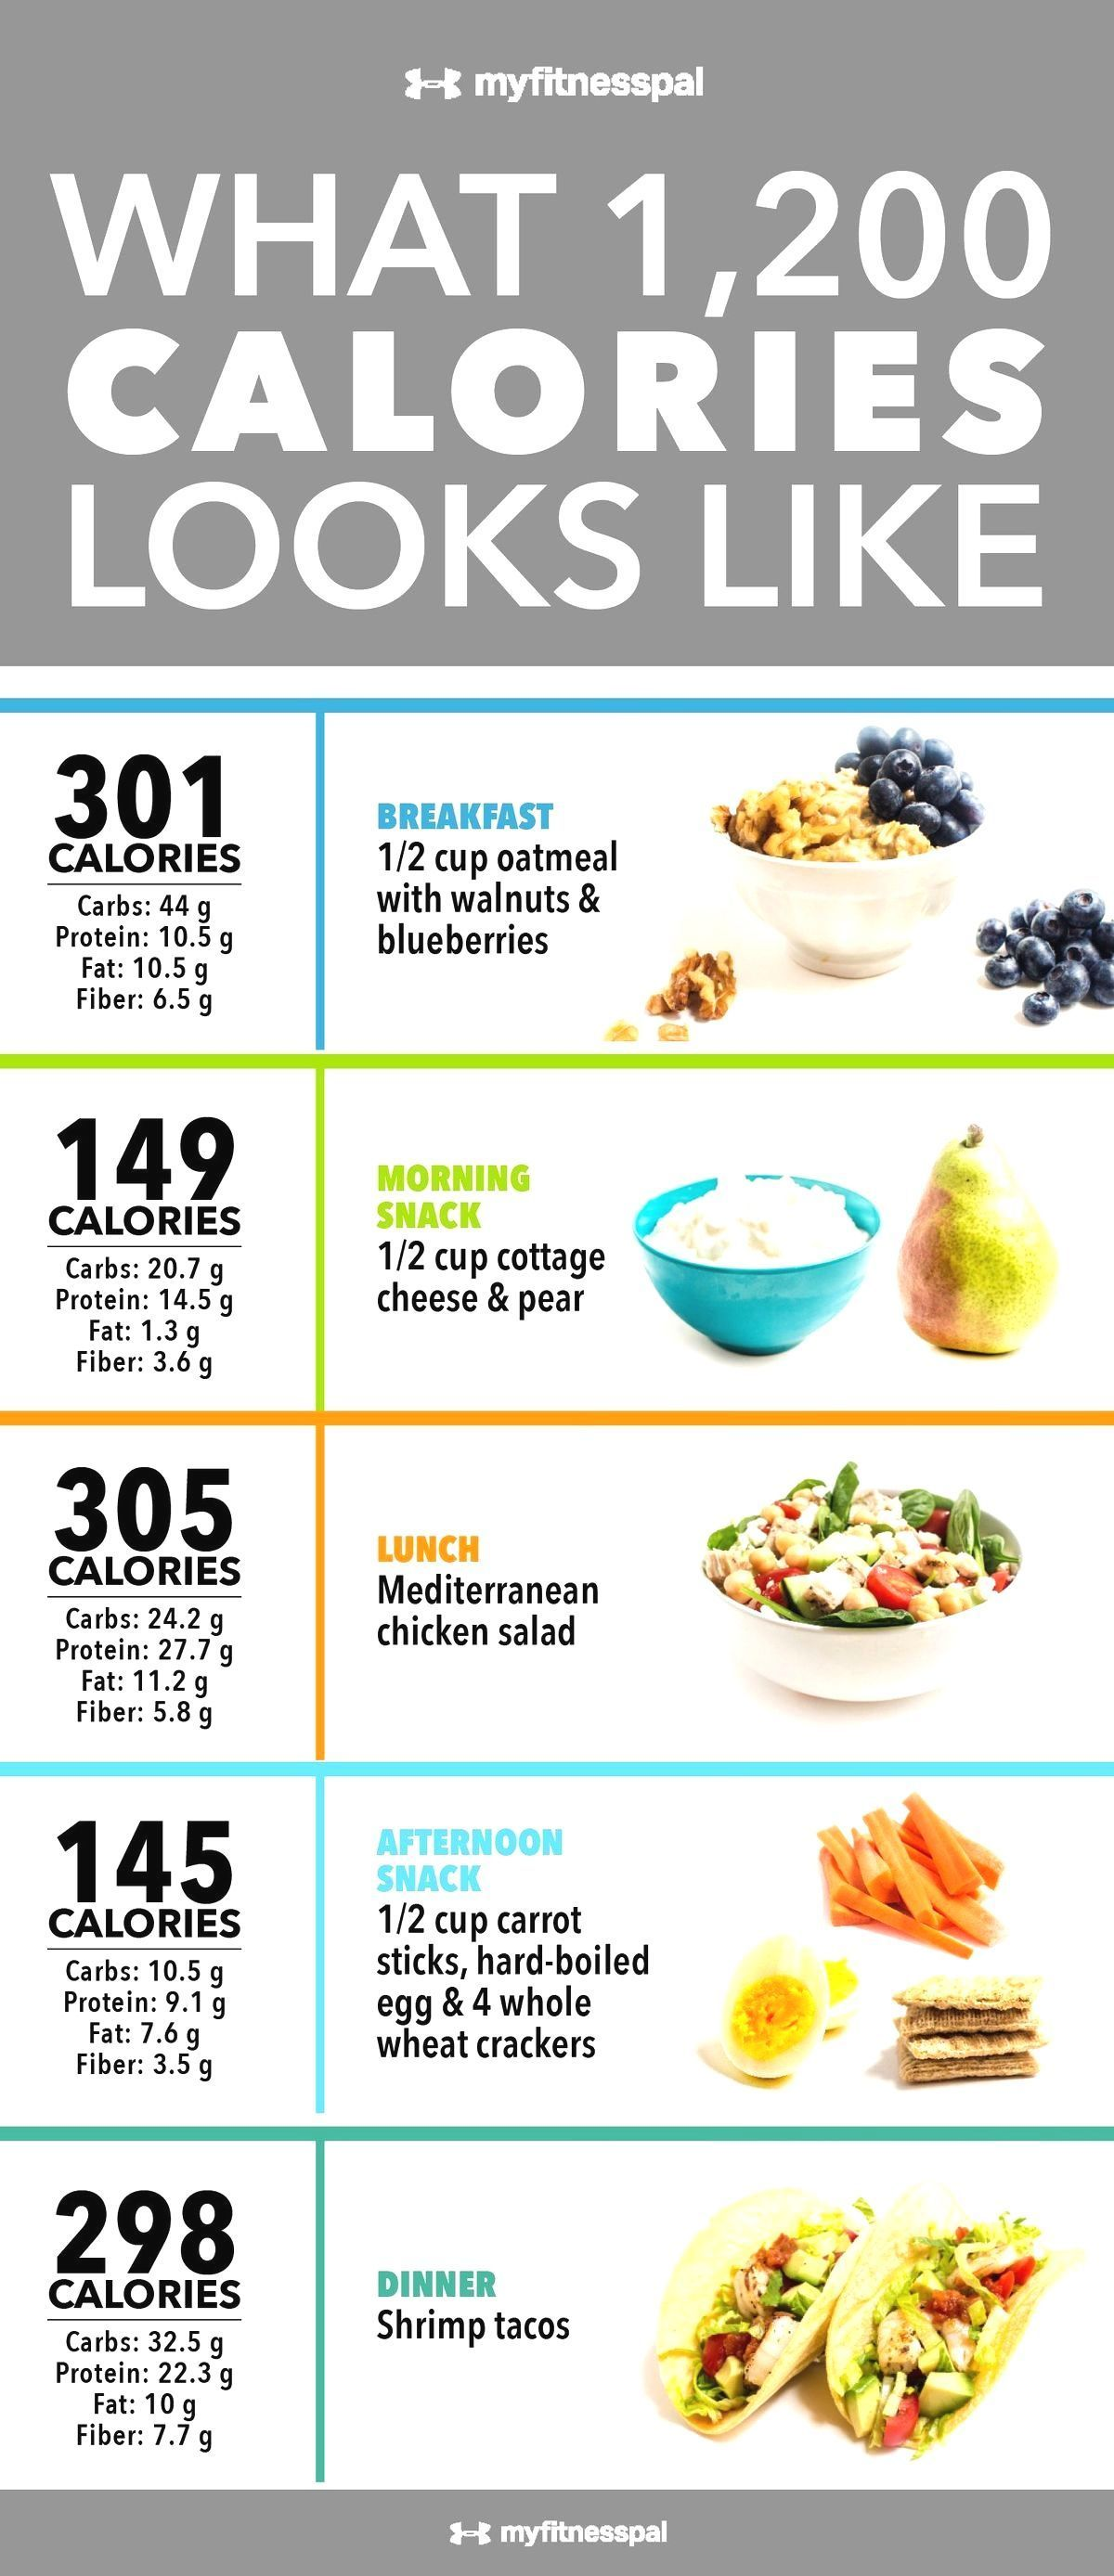 Fast weight loss tips home remedies #fatlosstips  | i need help losing weight fast for free#weightlo...